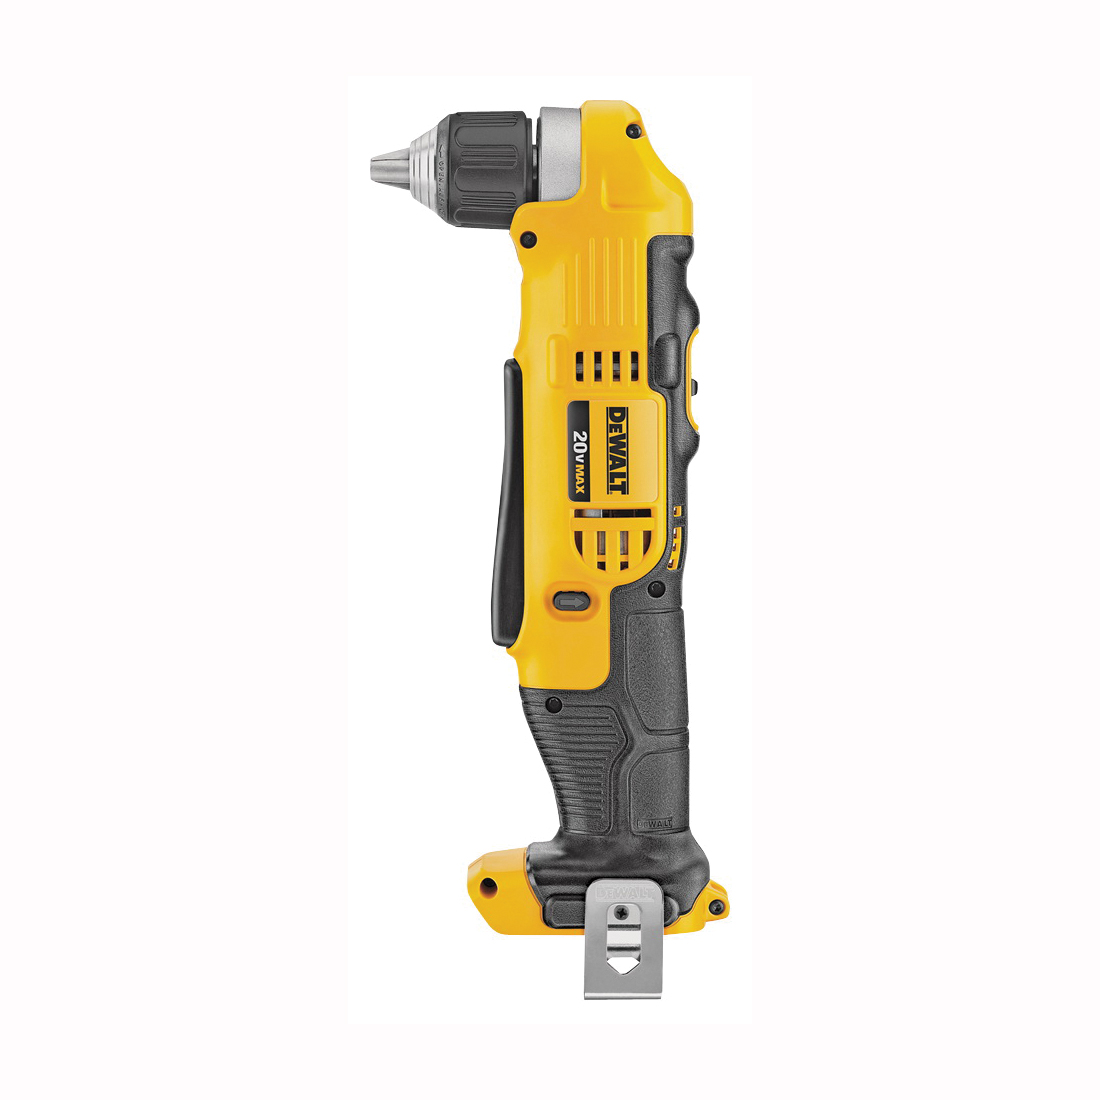 Picture of DeWALT DCD740B Drill/Driver, Bare Tool, 20 V Battery, 3/8 in Chuck, Keyless, Ratcheting Chuck, Battery Included: No